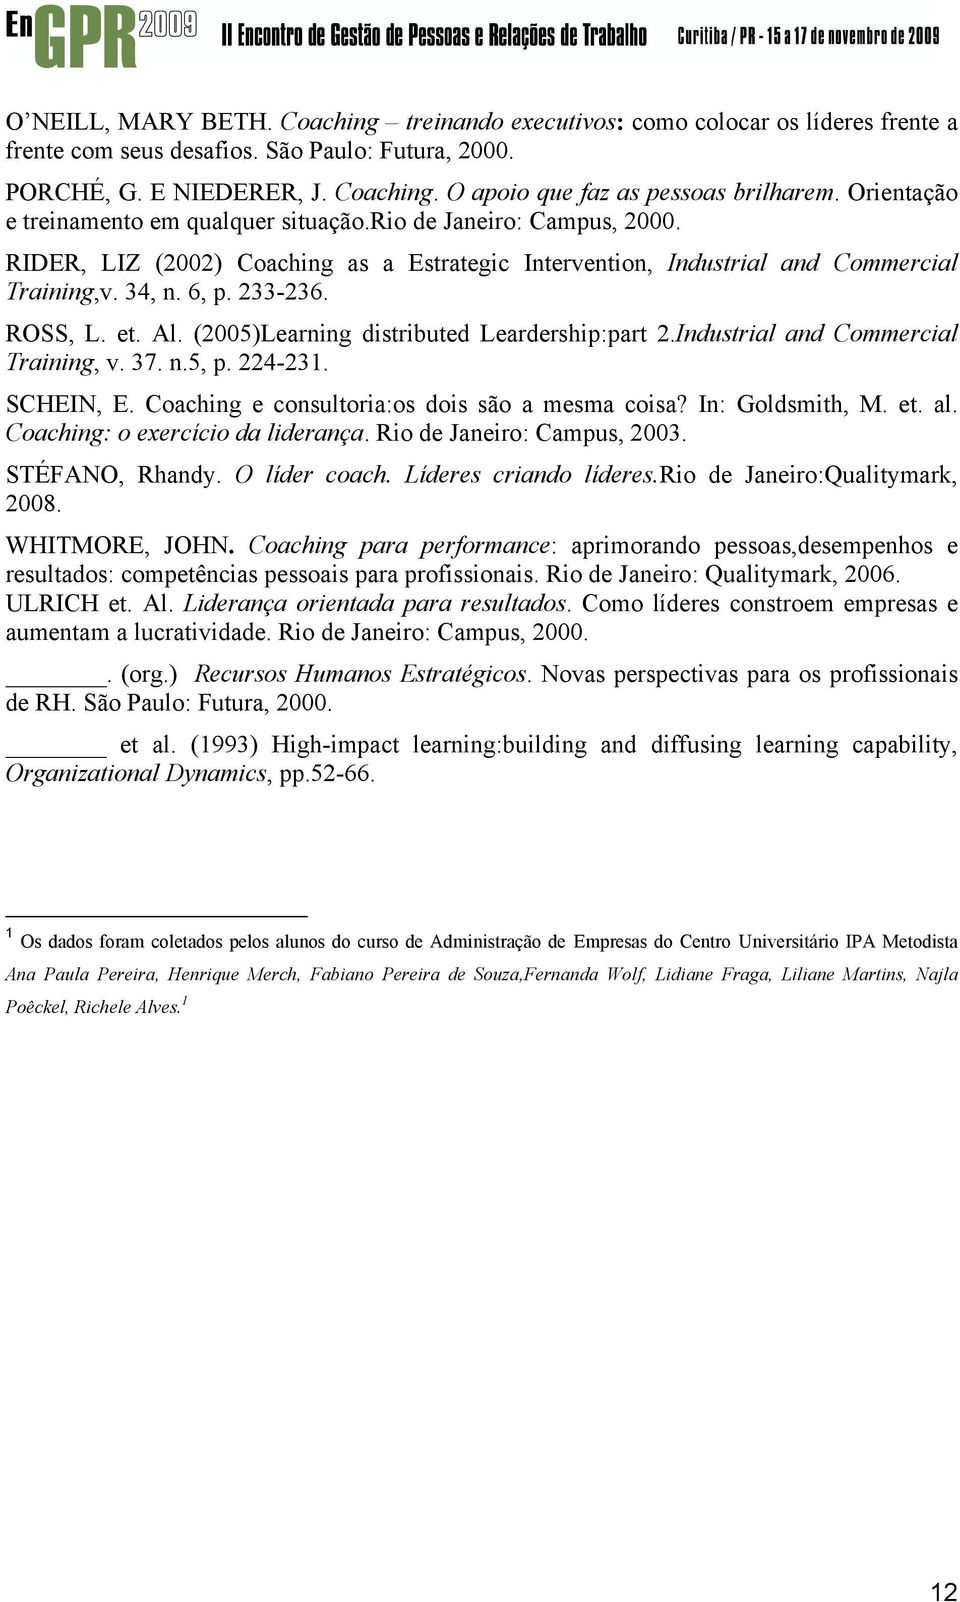 ROSS, L. et. Al. (2005)Learning distributed Leardership:part 2.Industrial and Commercial Training, v. 37. n.5, p. 224-231. SCHEIN, E. Coaching e consultoria:os dois são a mesma coisa?